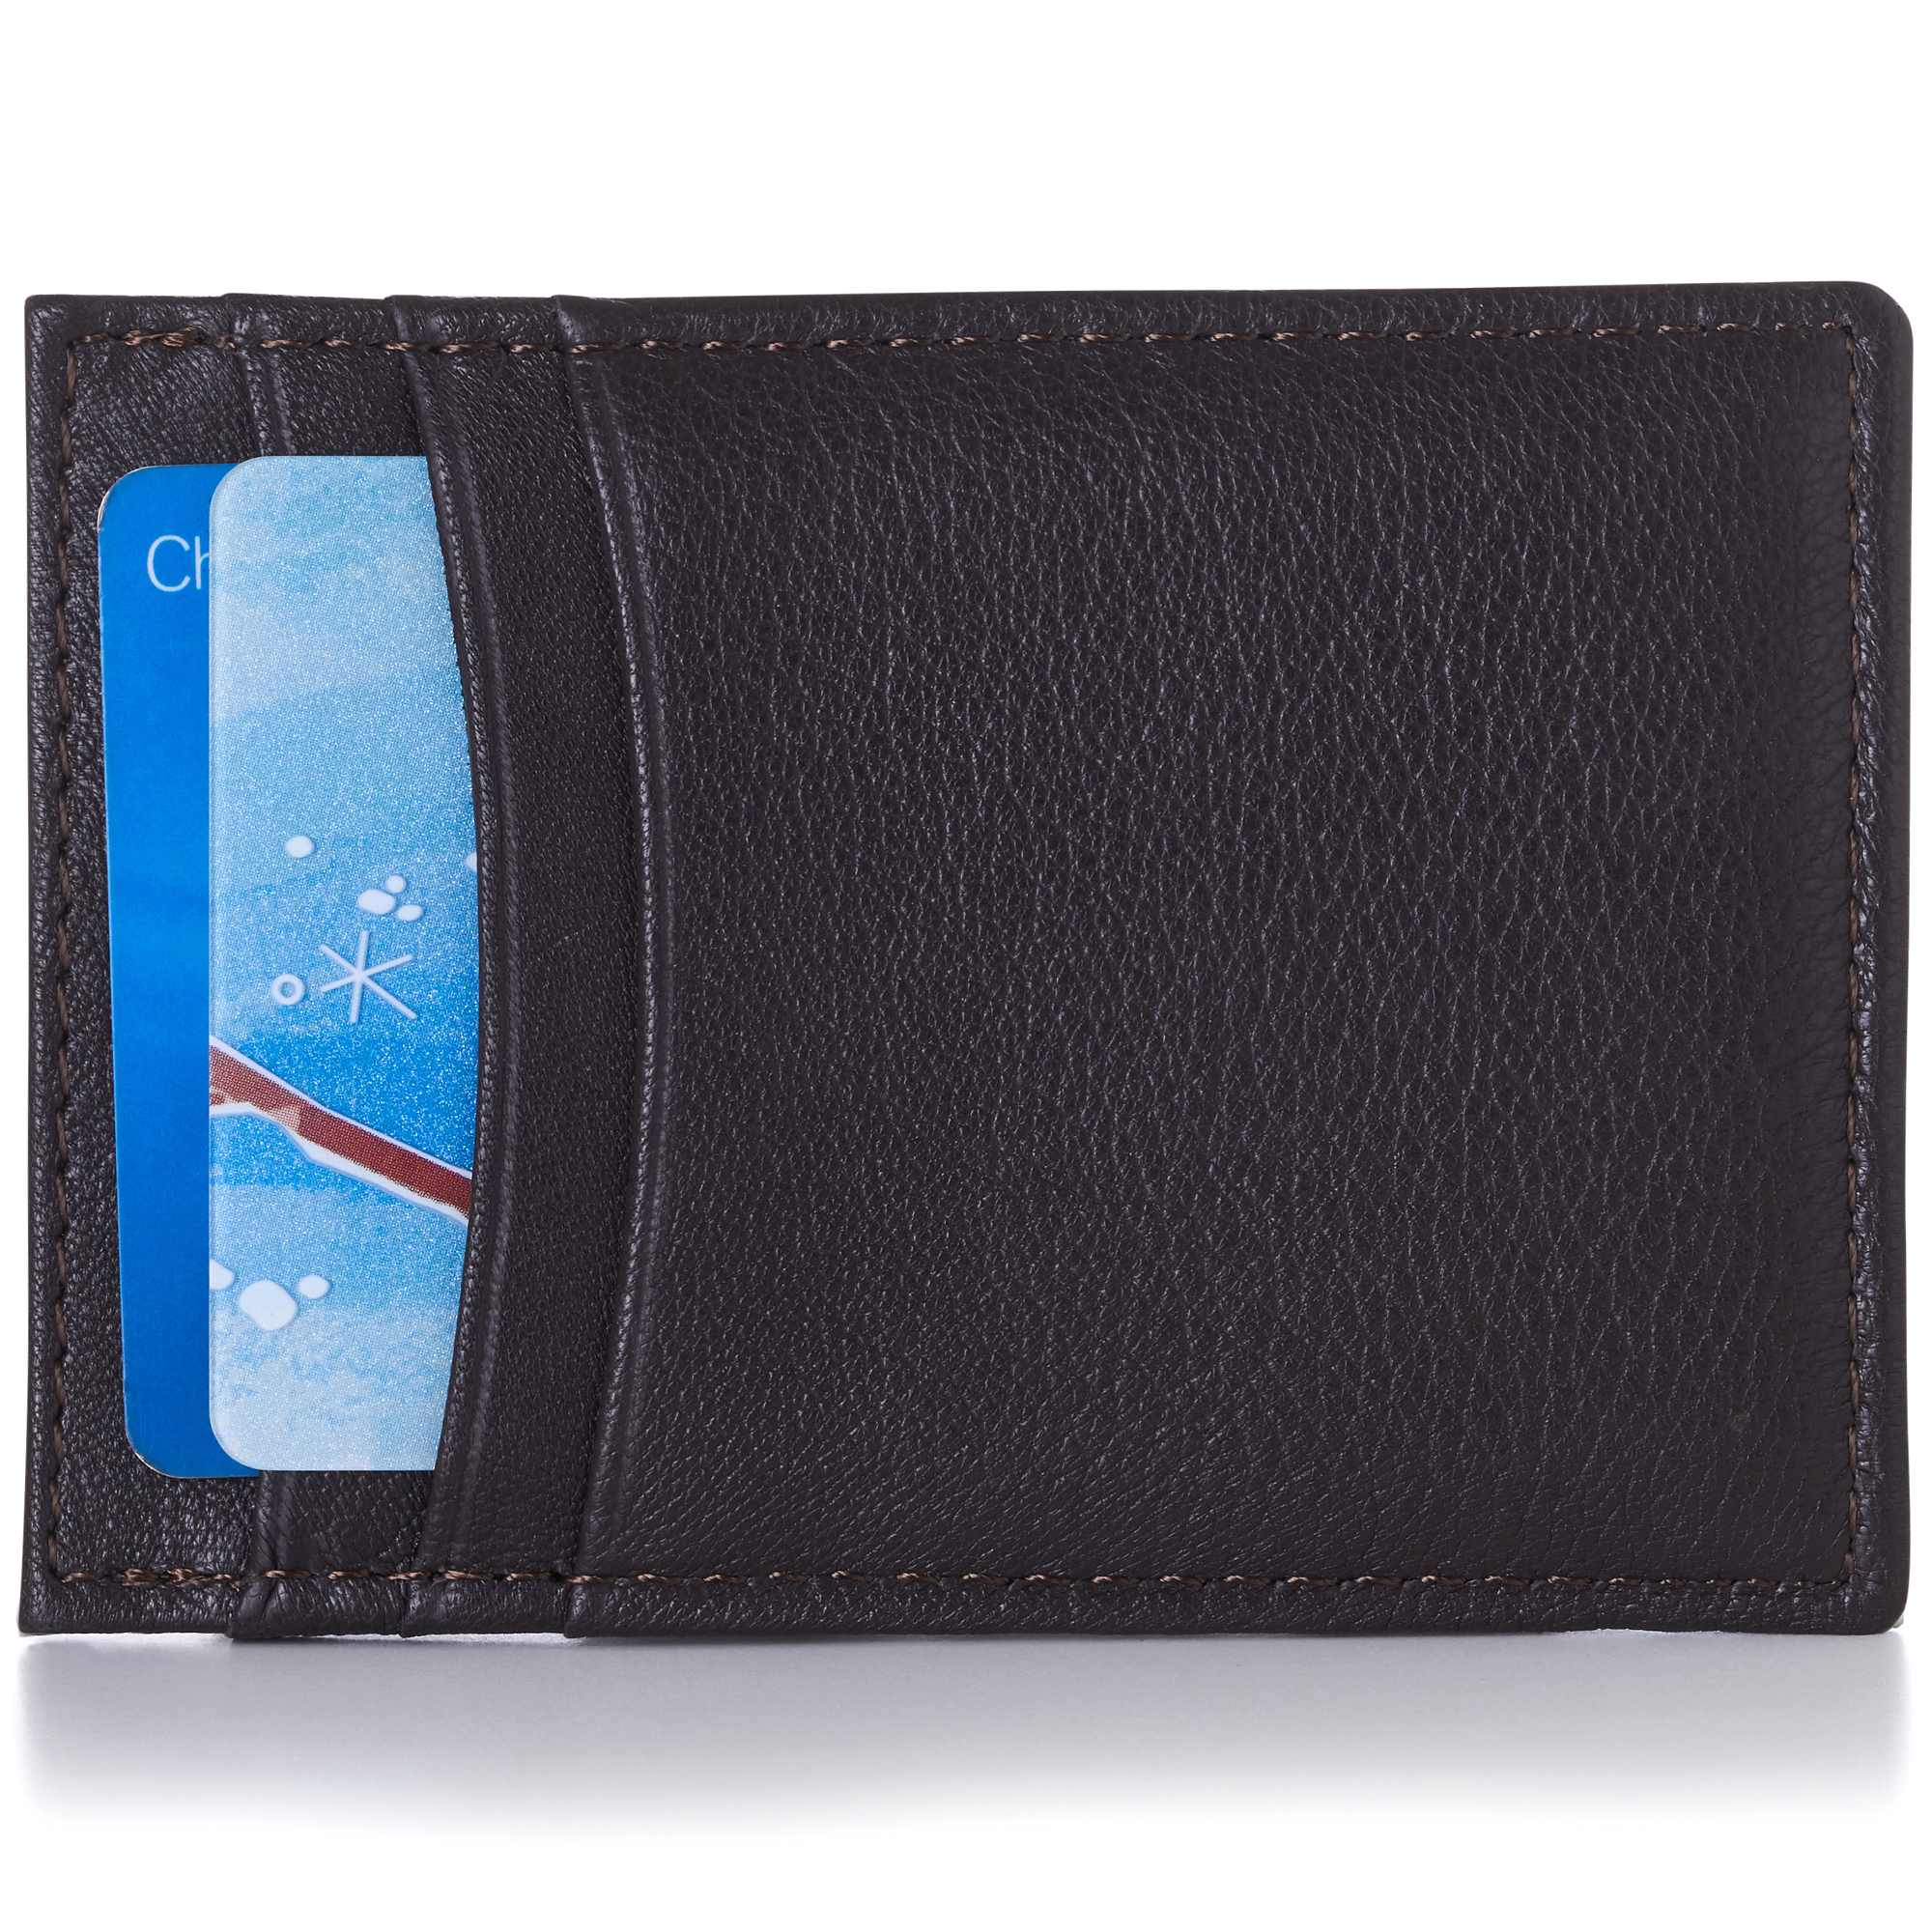 Alpine-Swiss-Mens-Money-Clip-Thin-Front-Pocket-Wallet-Genuine-Leather-Card-Case